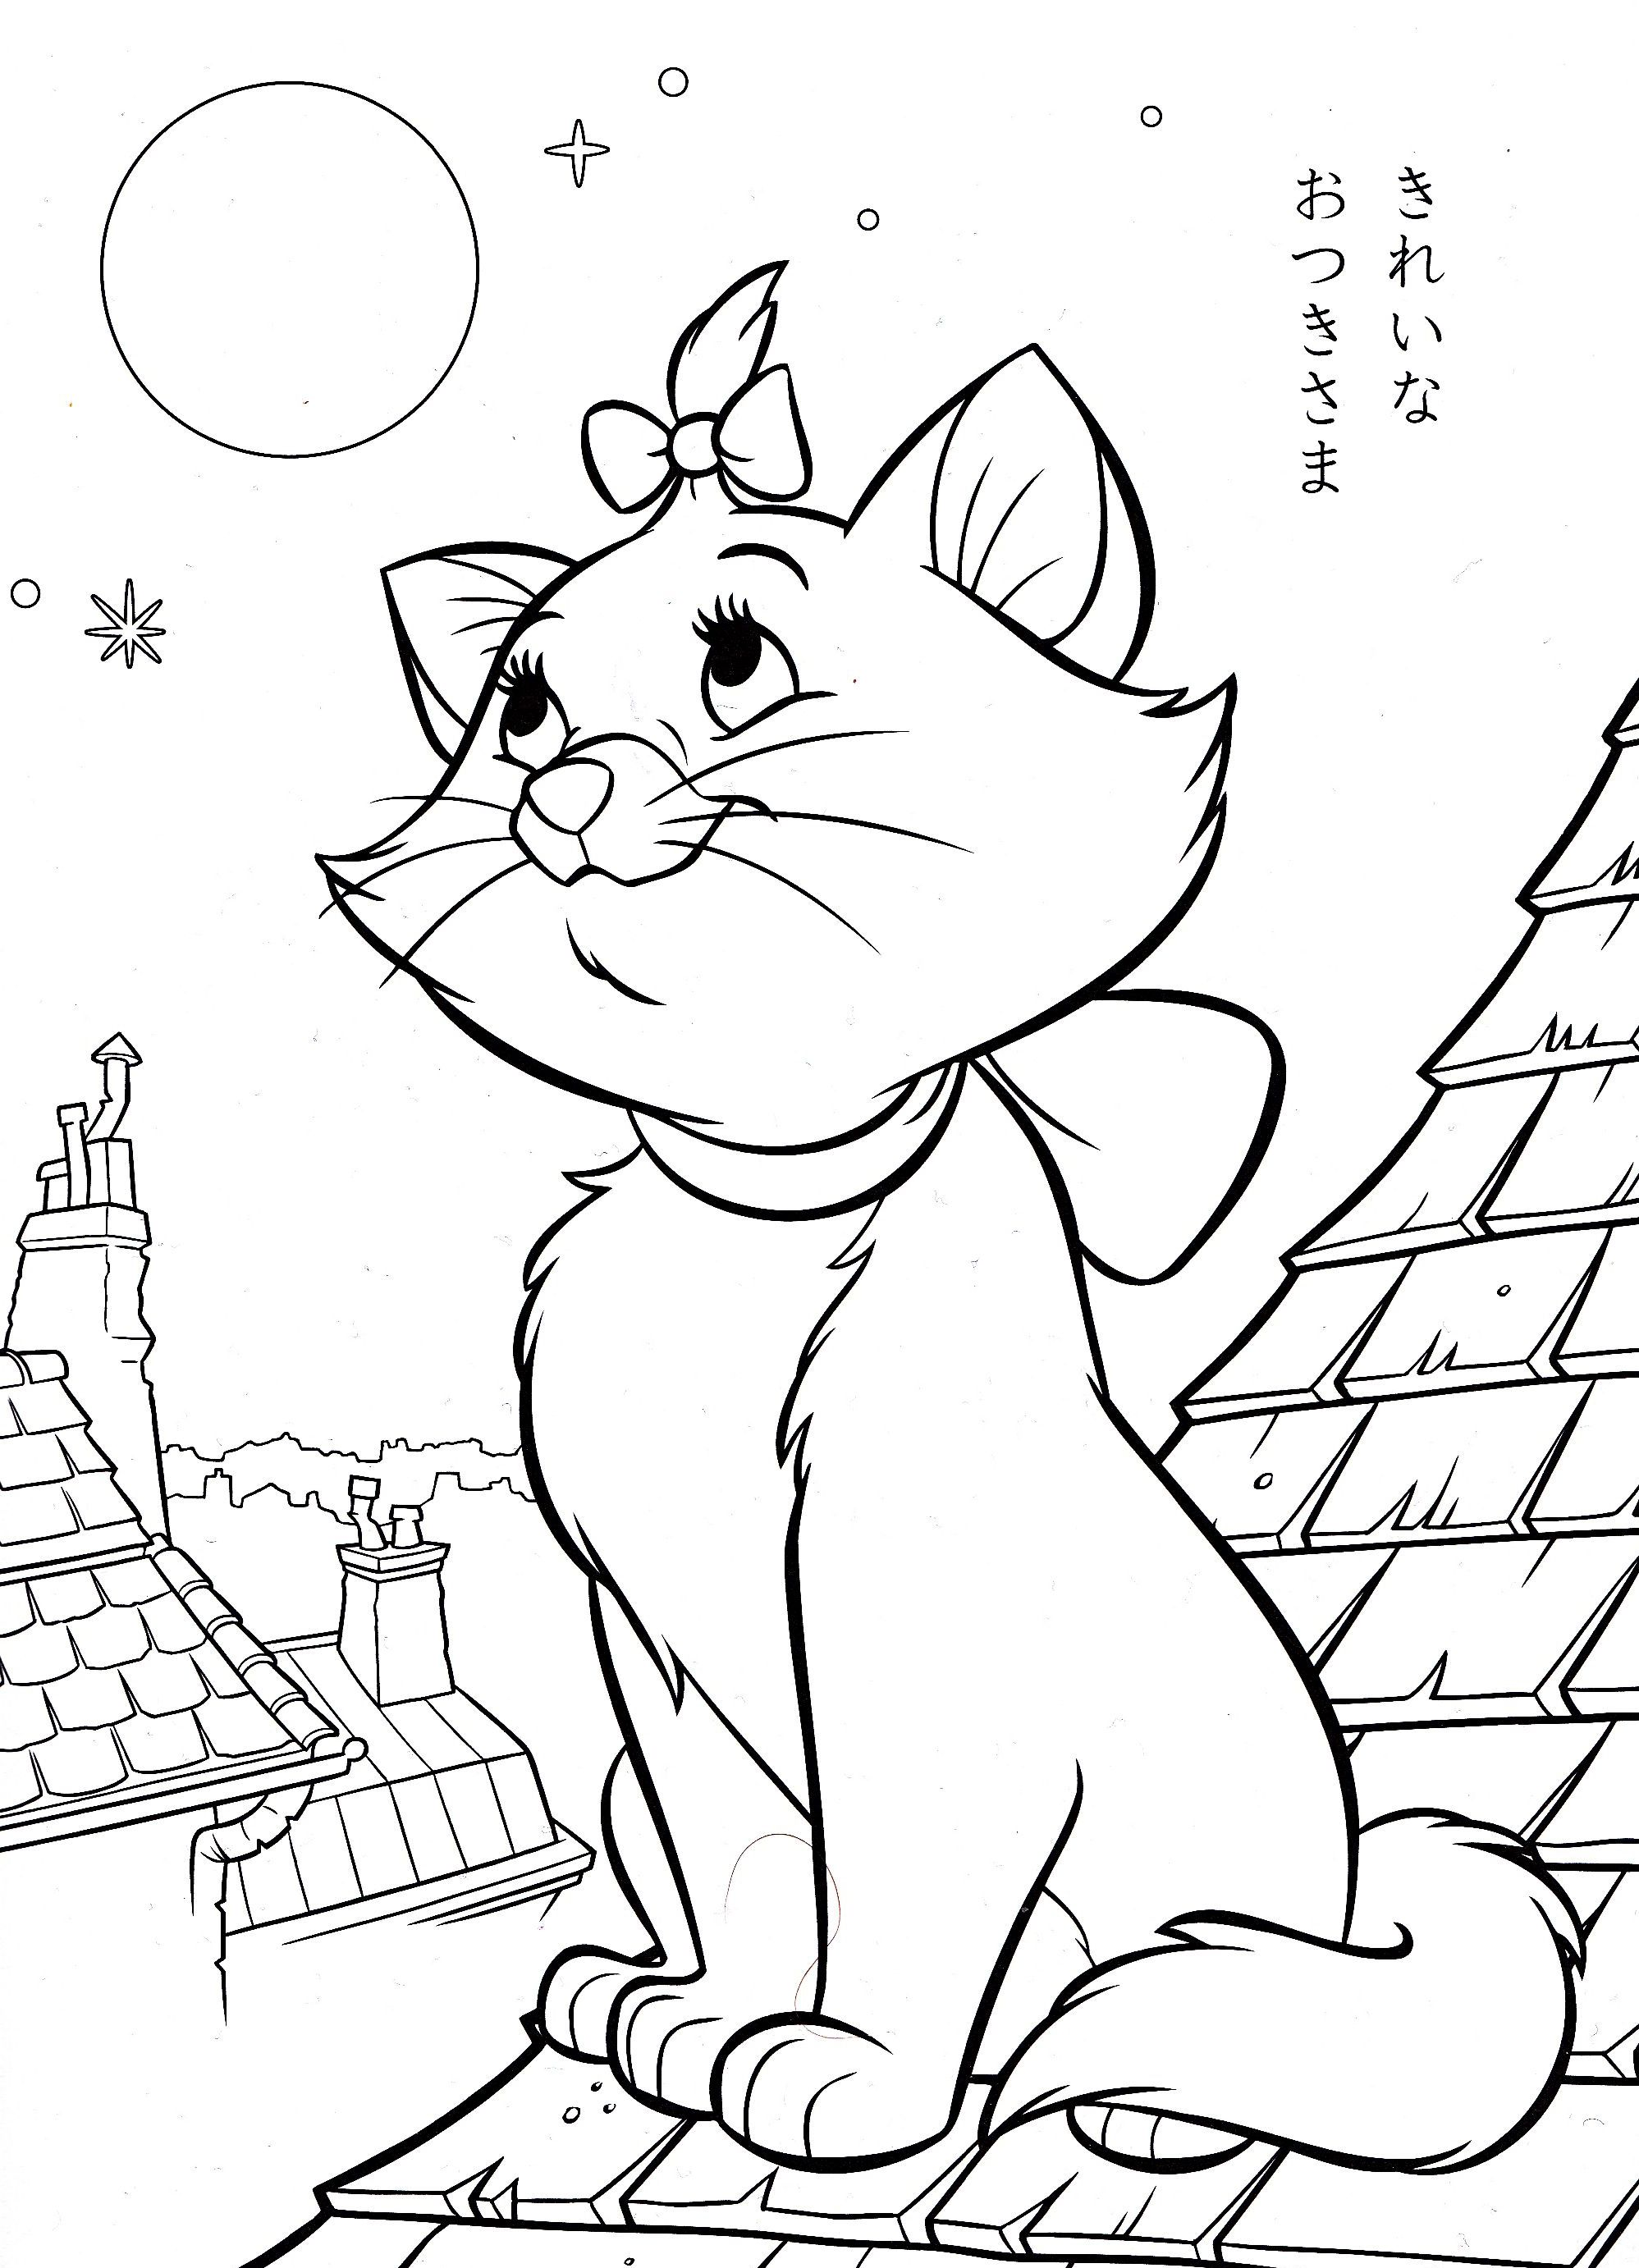 Coloring Pages Disney Coloring Pages Disney Coloring Pages For Adults Best Kids Disney Coloring Sheets Disney Princess Coloring Pages Ariel Coloring Pages